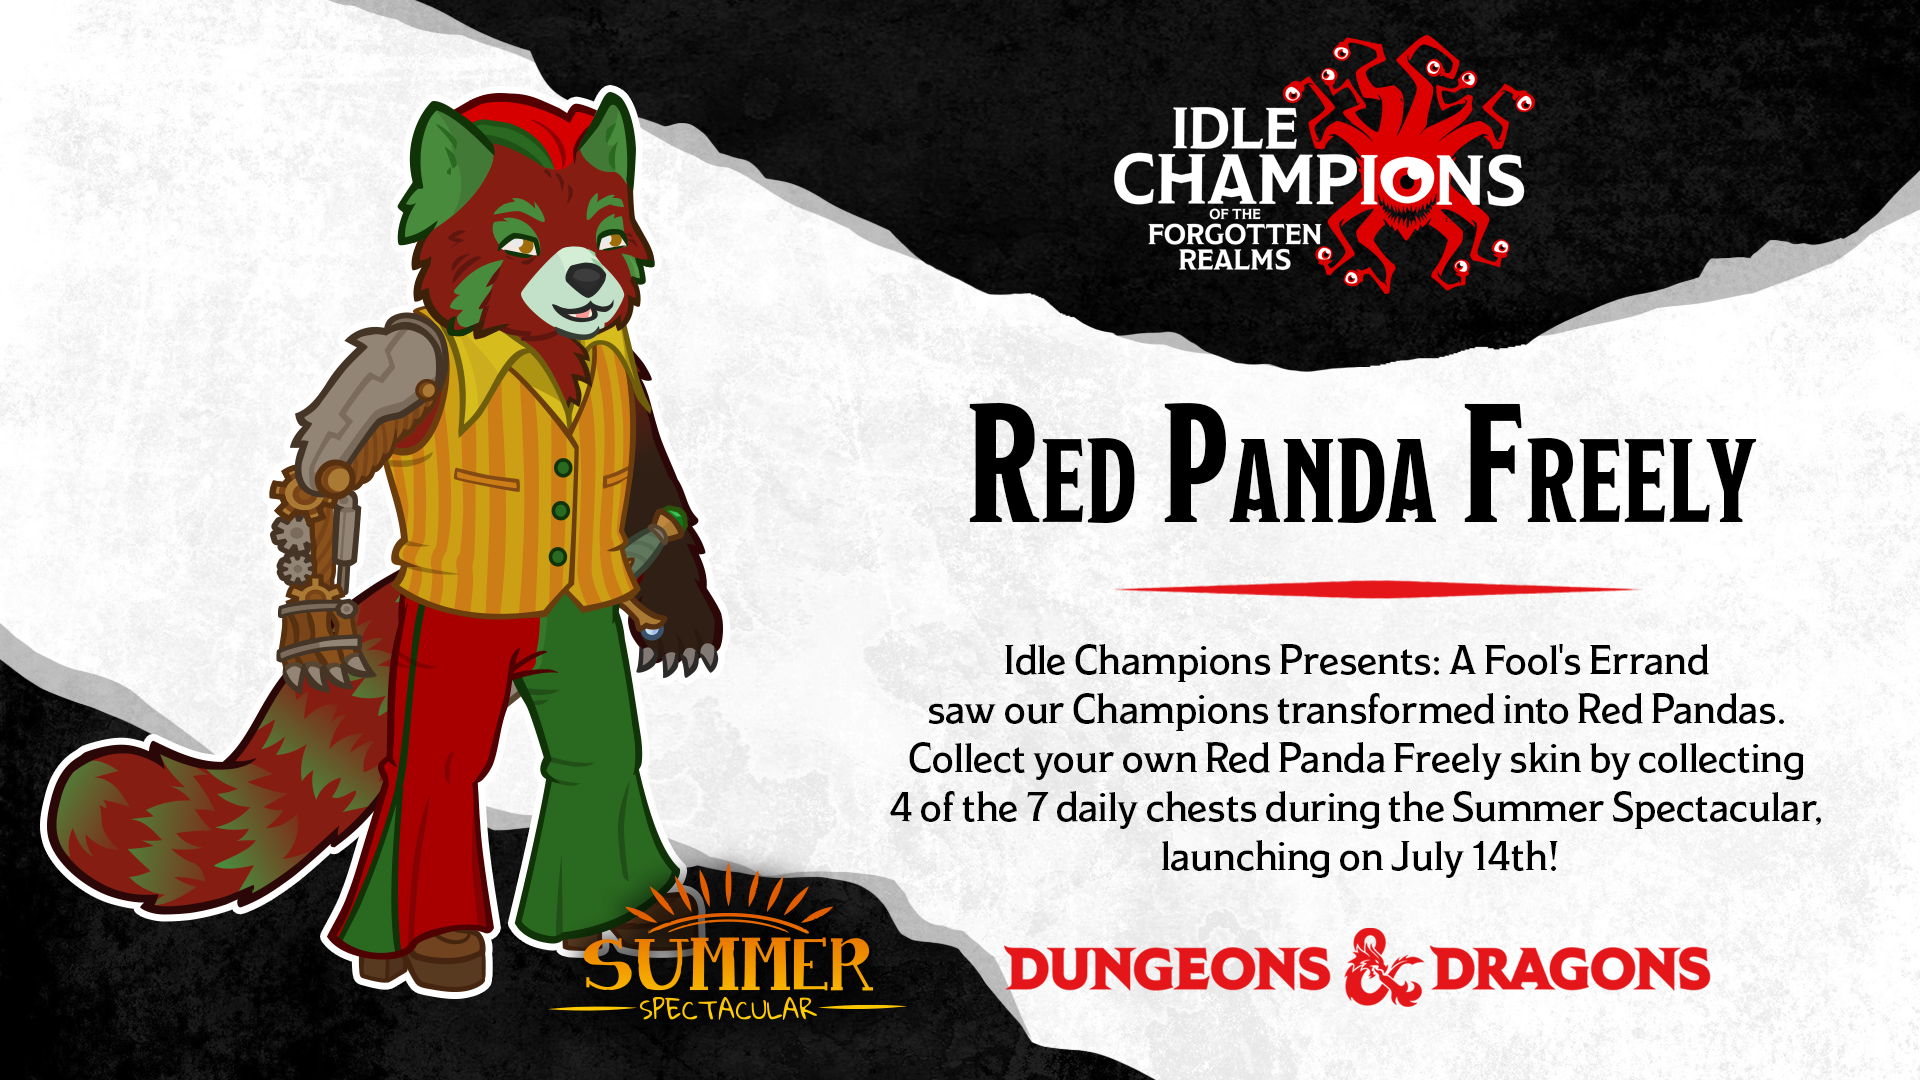 Dungeons & Dragons Summer Spectacular Red Panda Freely